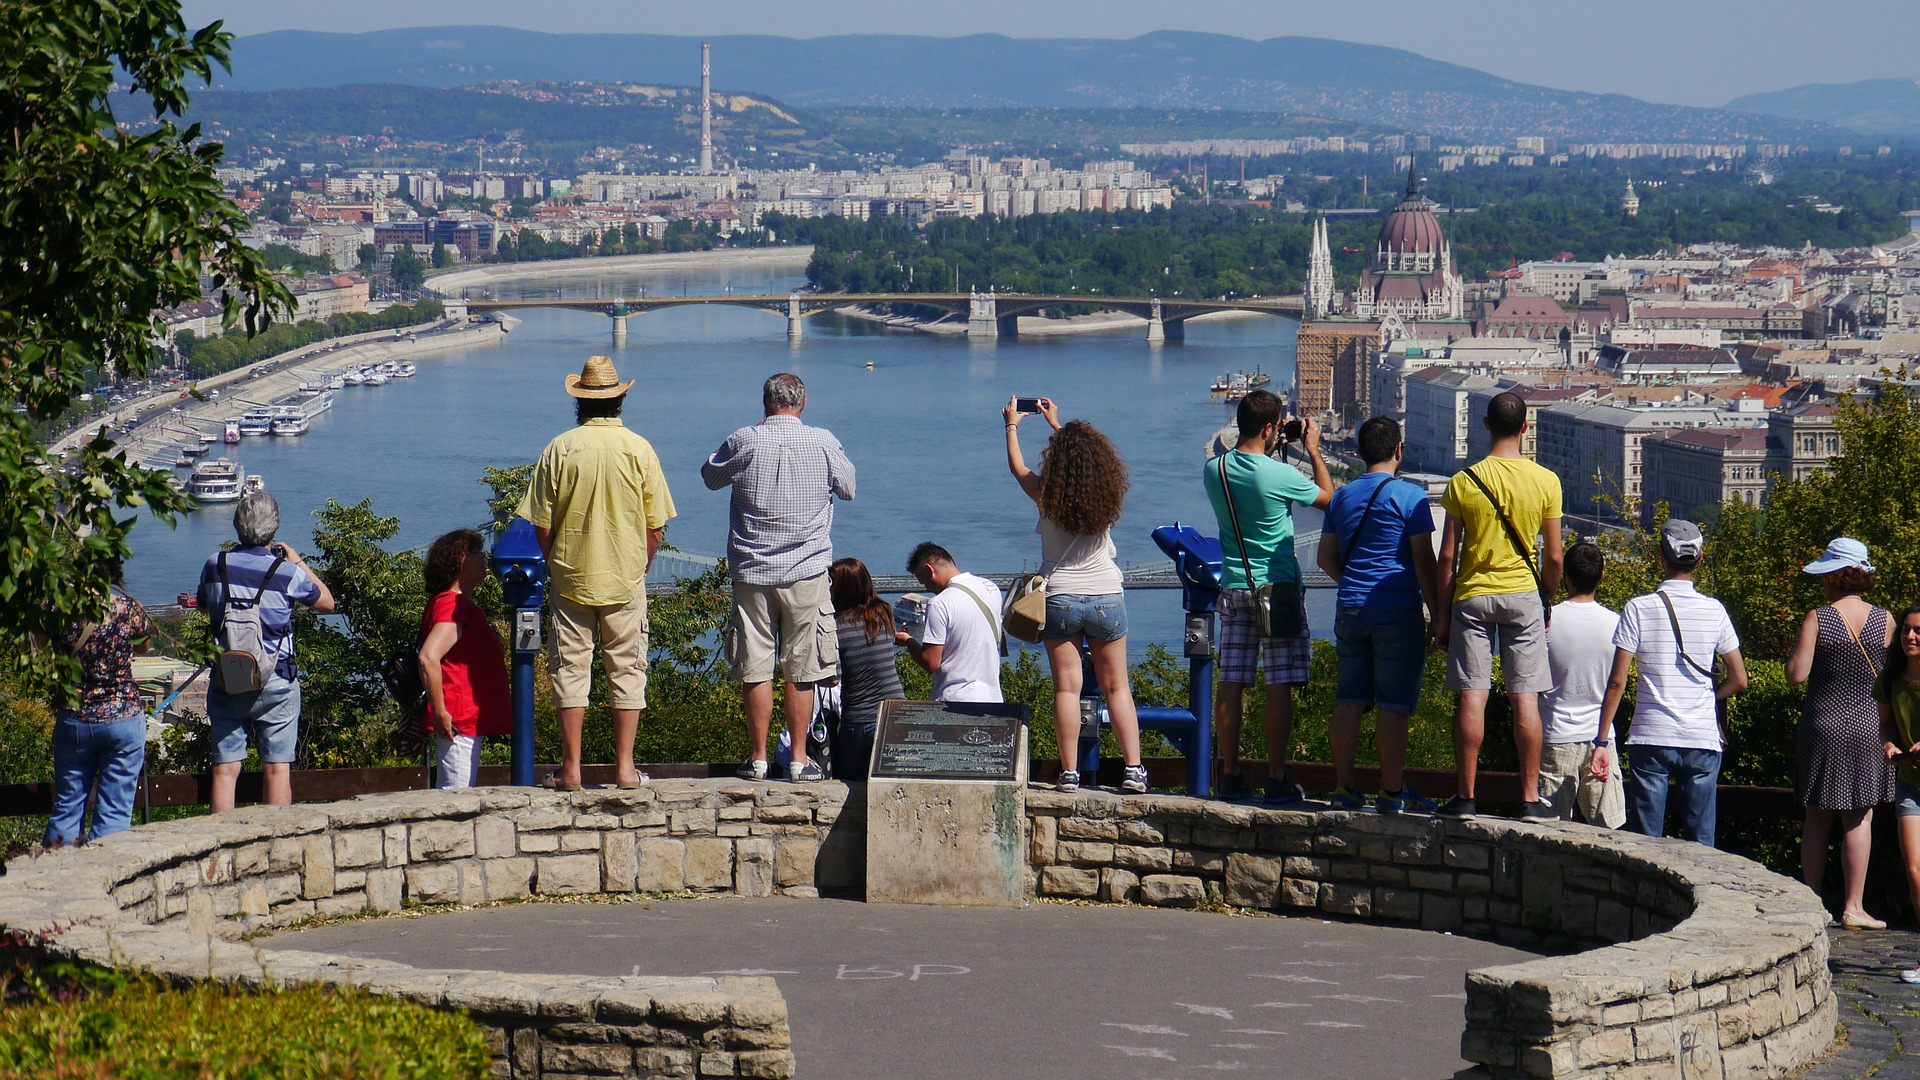 Gellért Hill, overlooking the Danube River in Budapest, Hungary